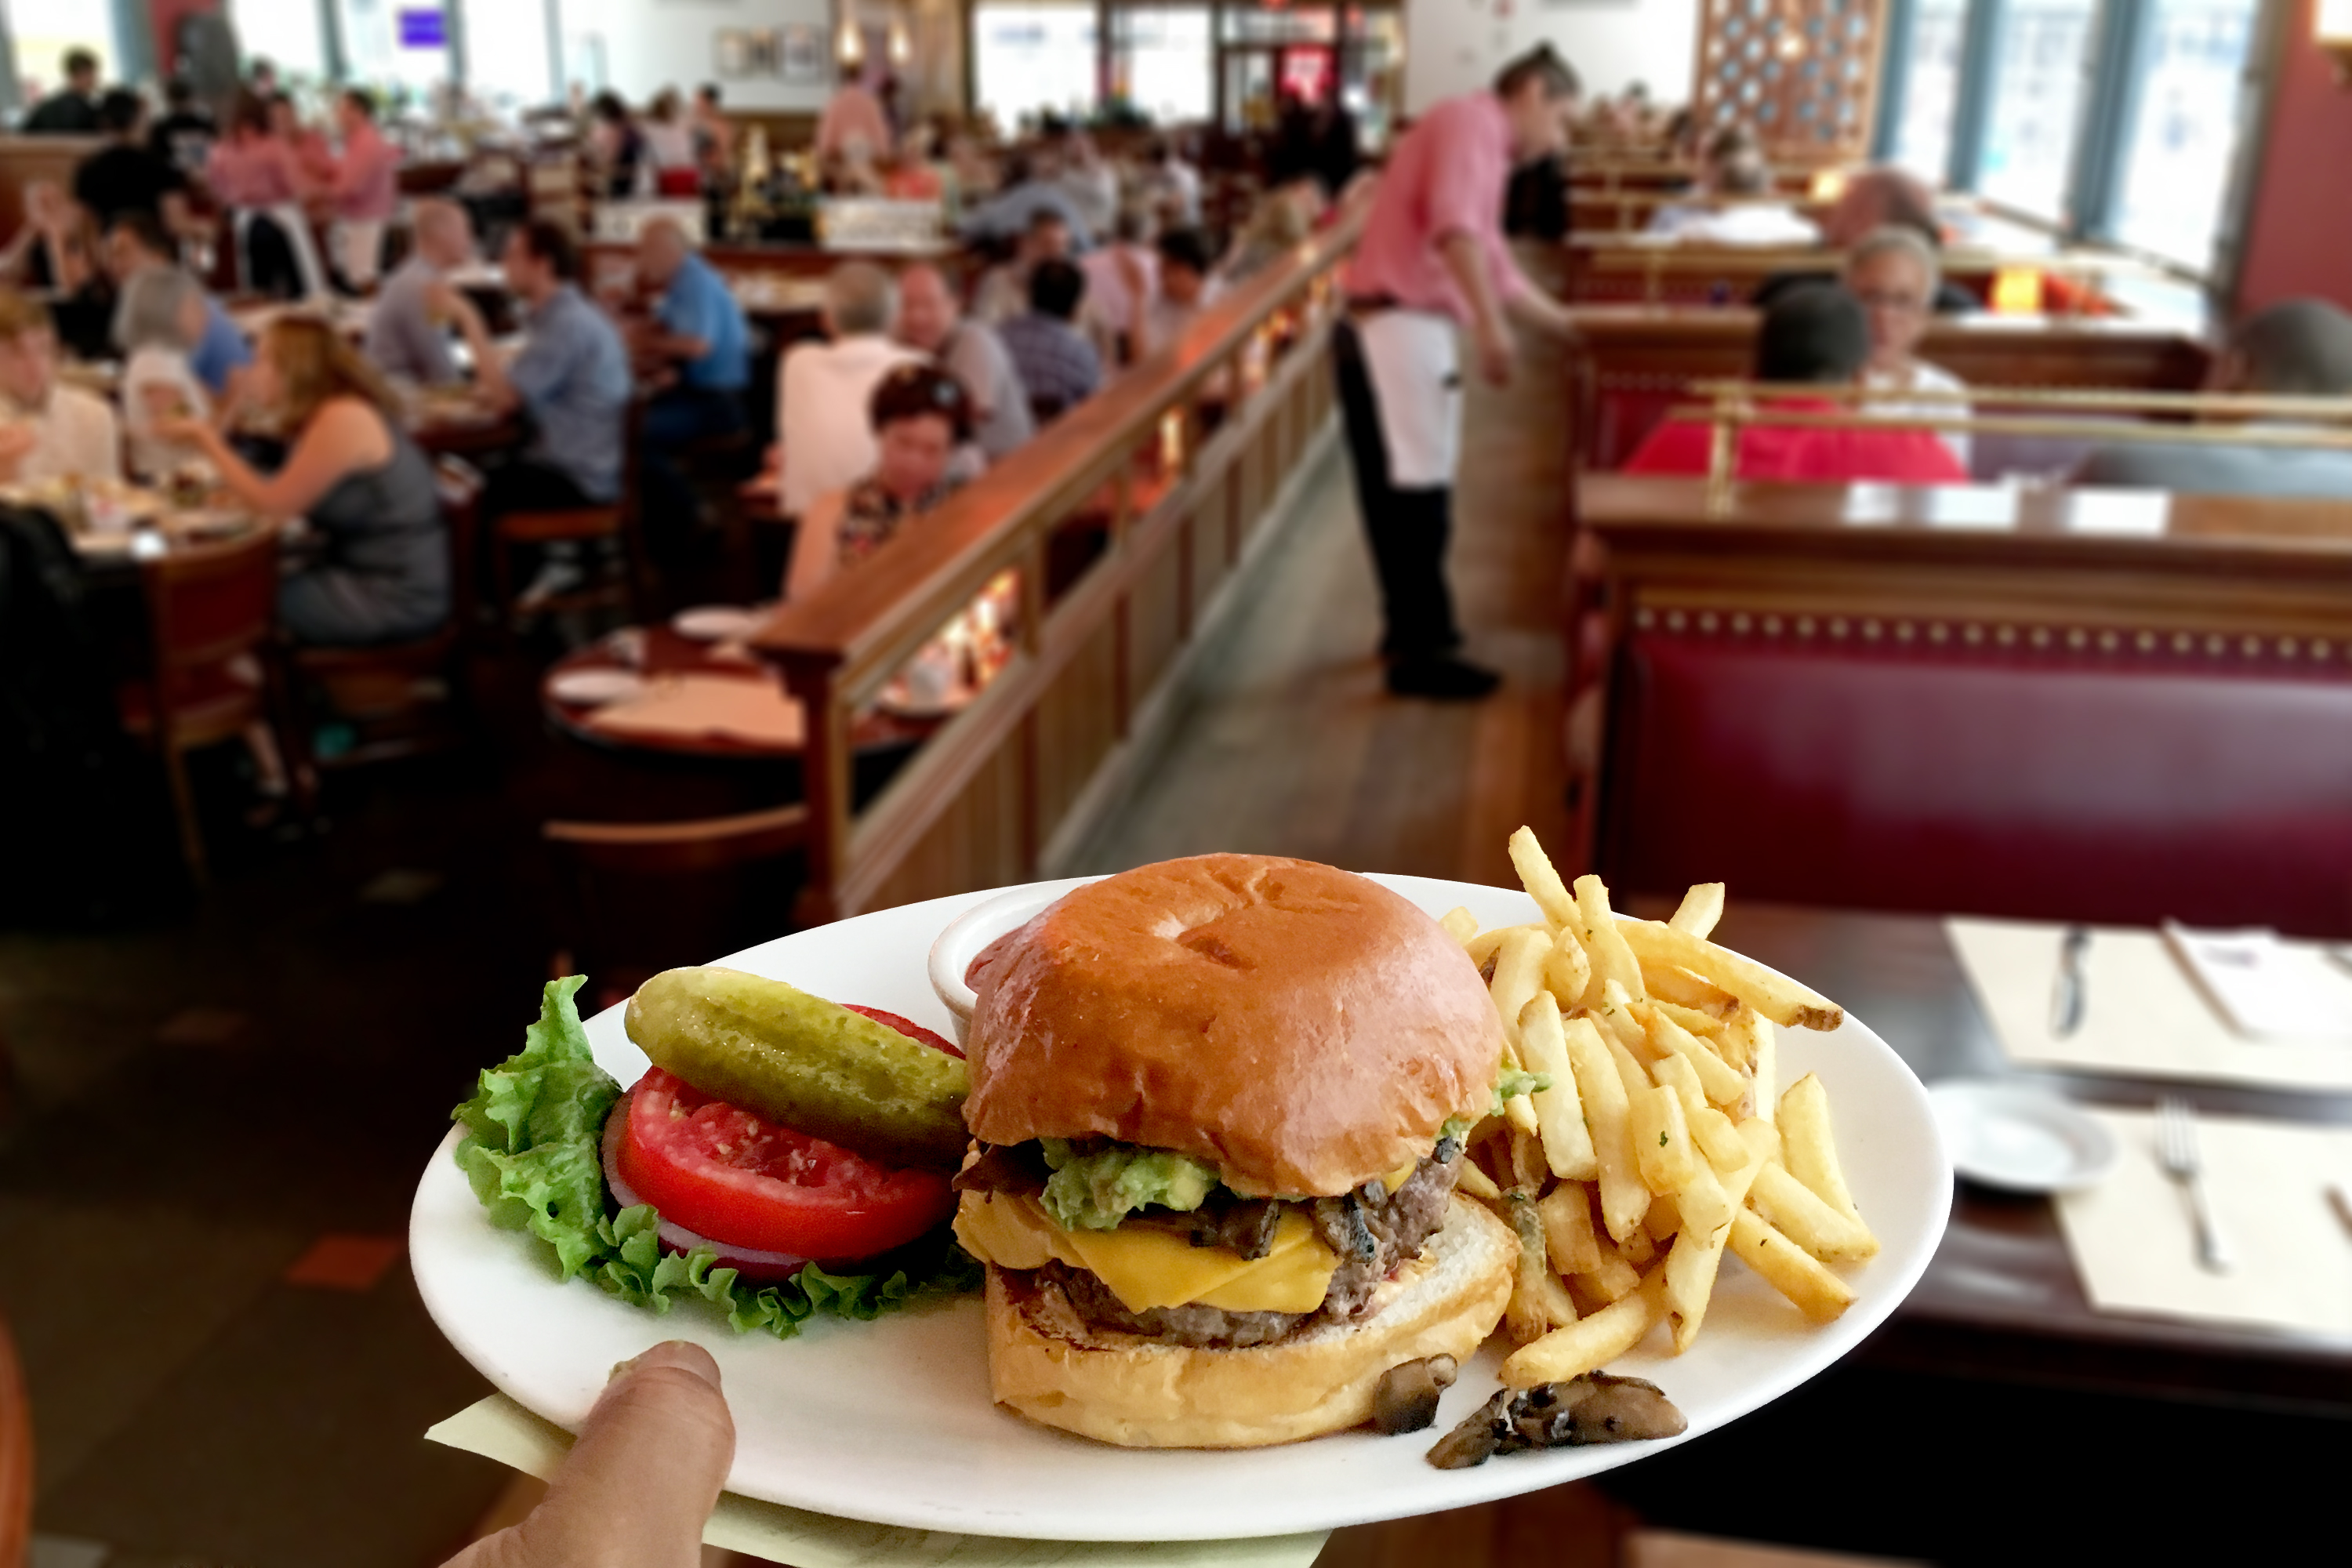 Pershing Square Burger